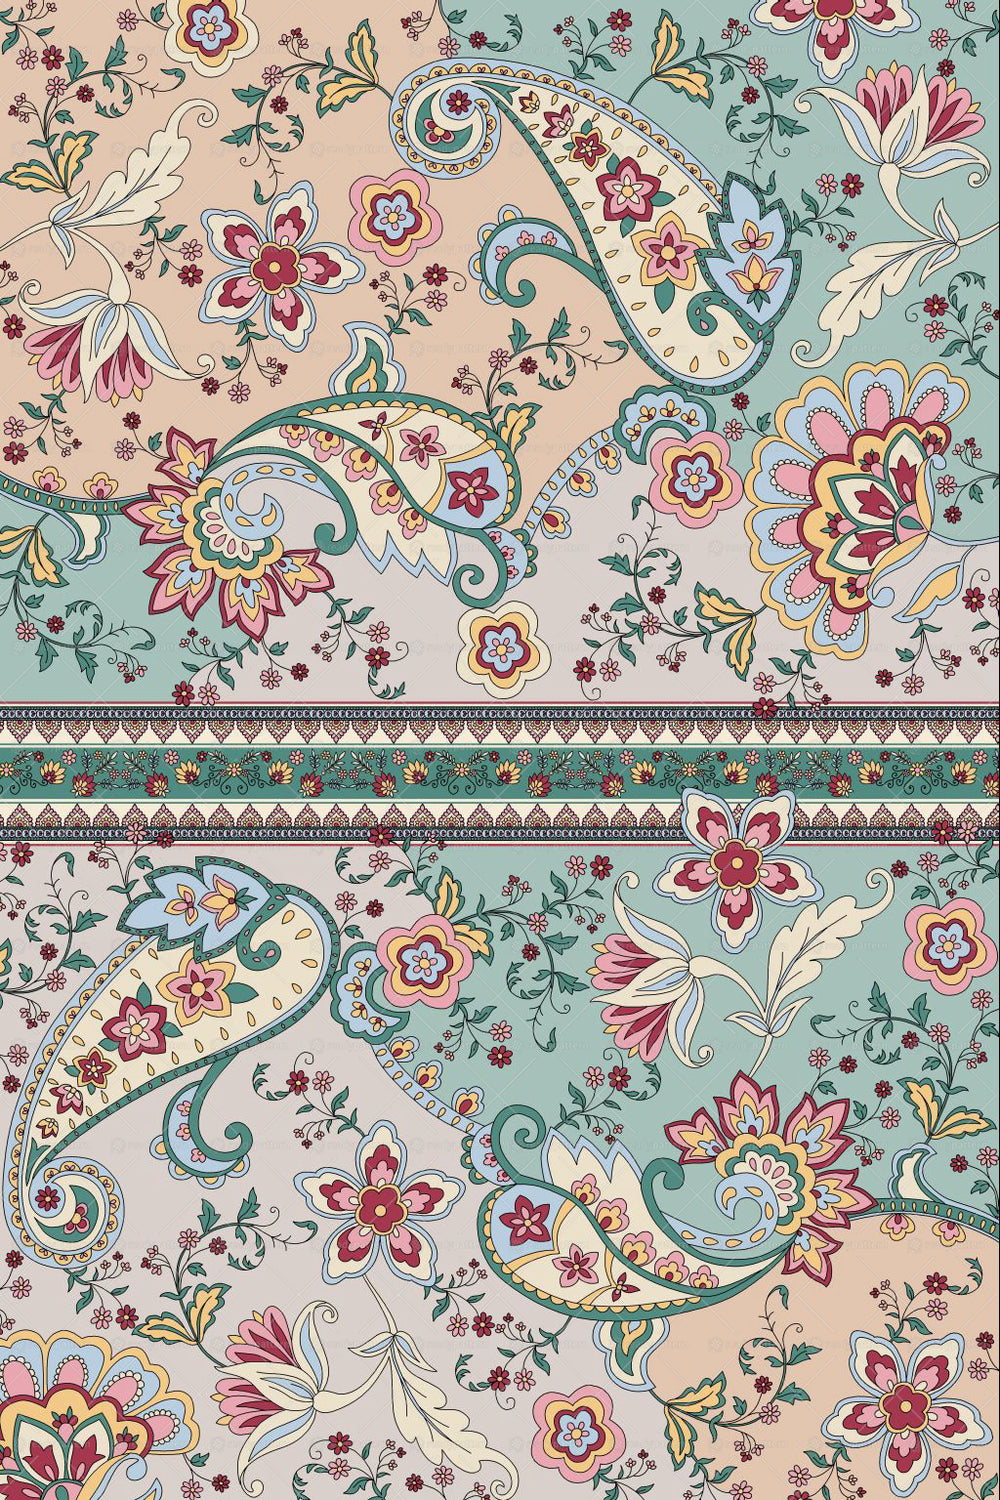 44+ Floral Paisley Digital Papers Crafter Files